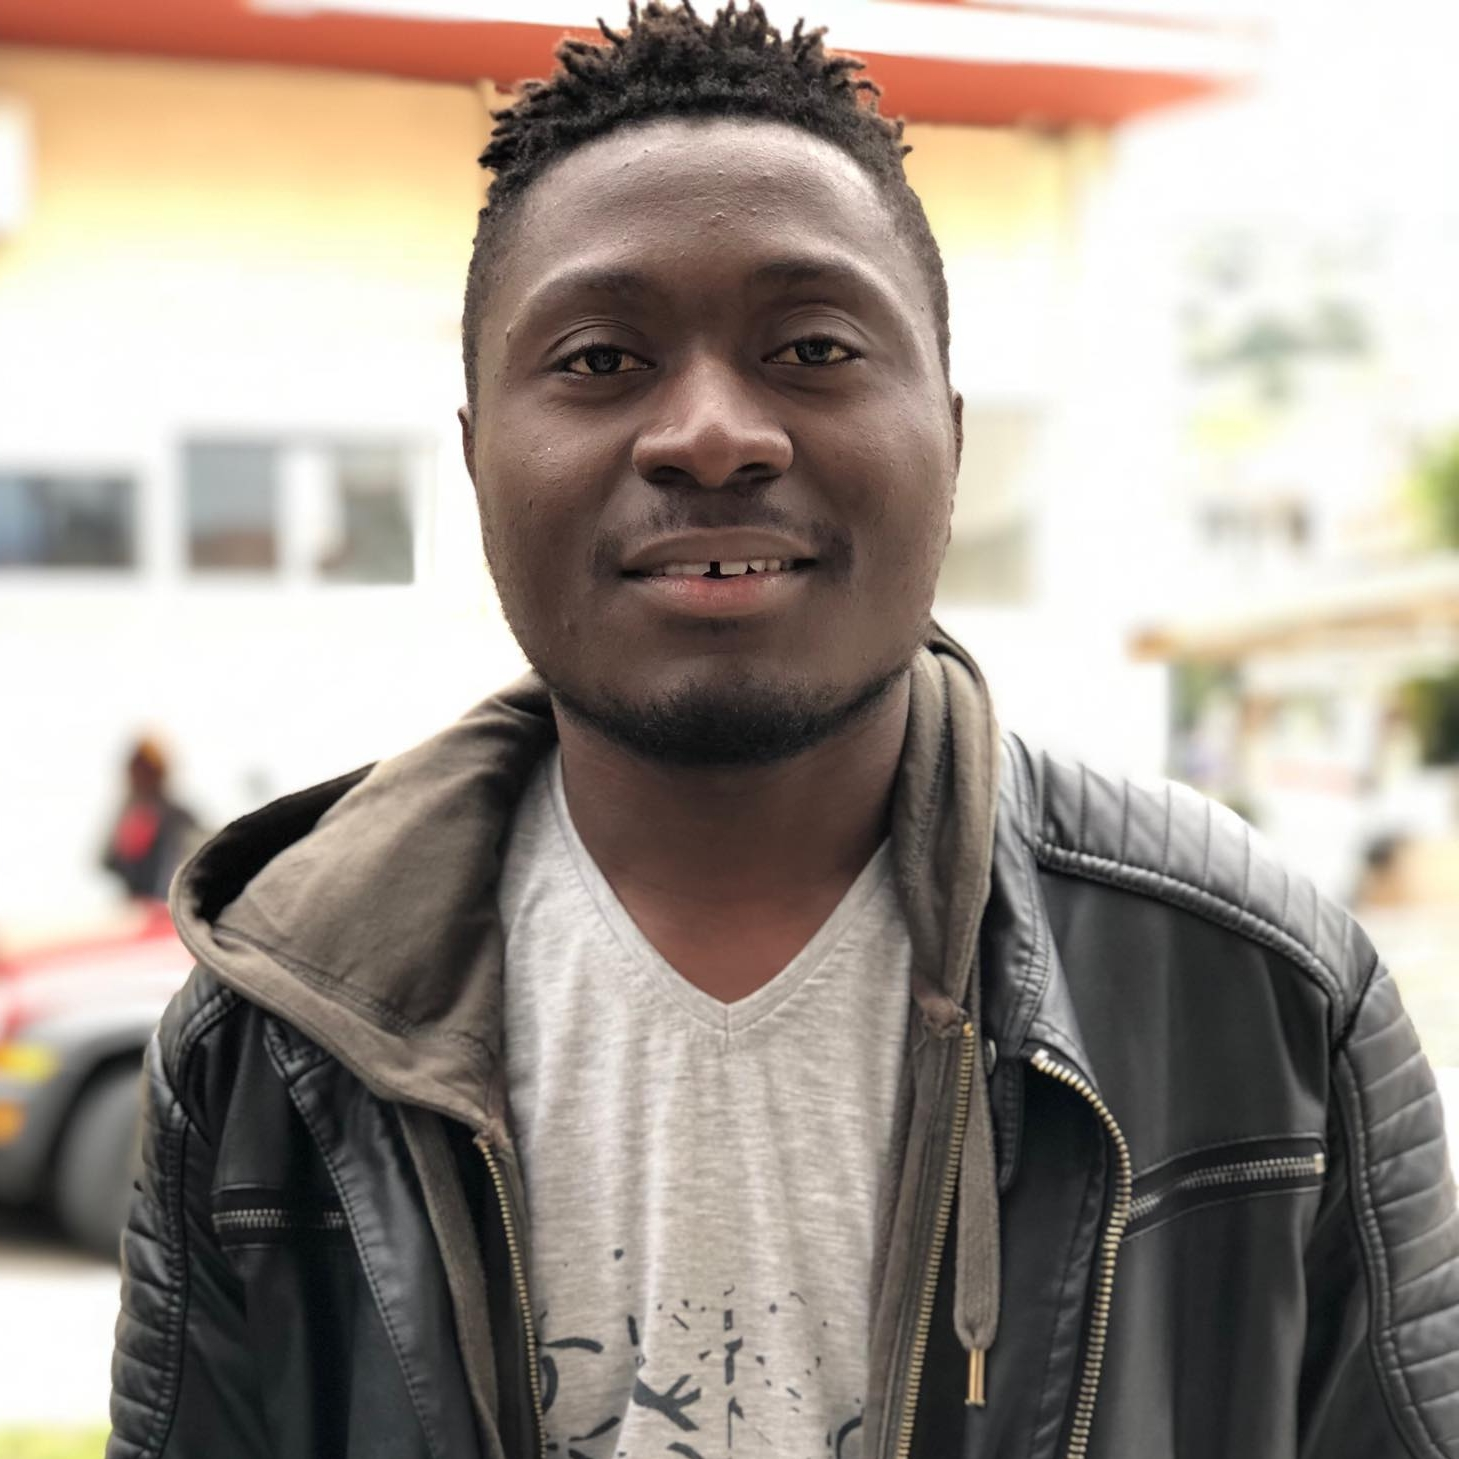 """Bel, 18 - D.R. of Congo   """"Personally, I like to save people. I feel they all deserve my service. I love sports and spending time in university working towards my network technician degree."""""""